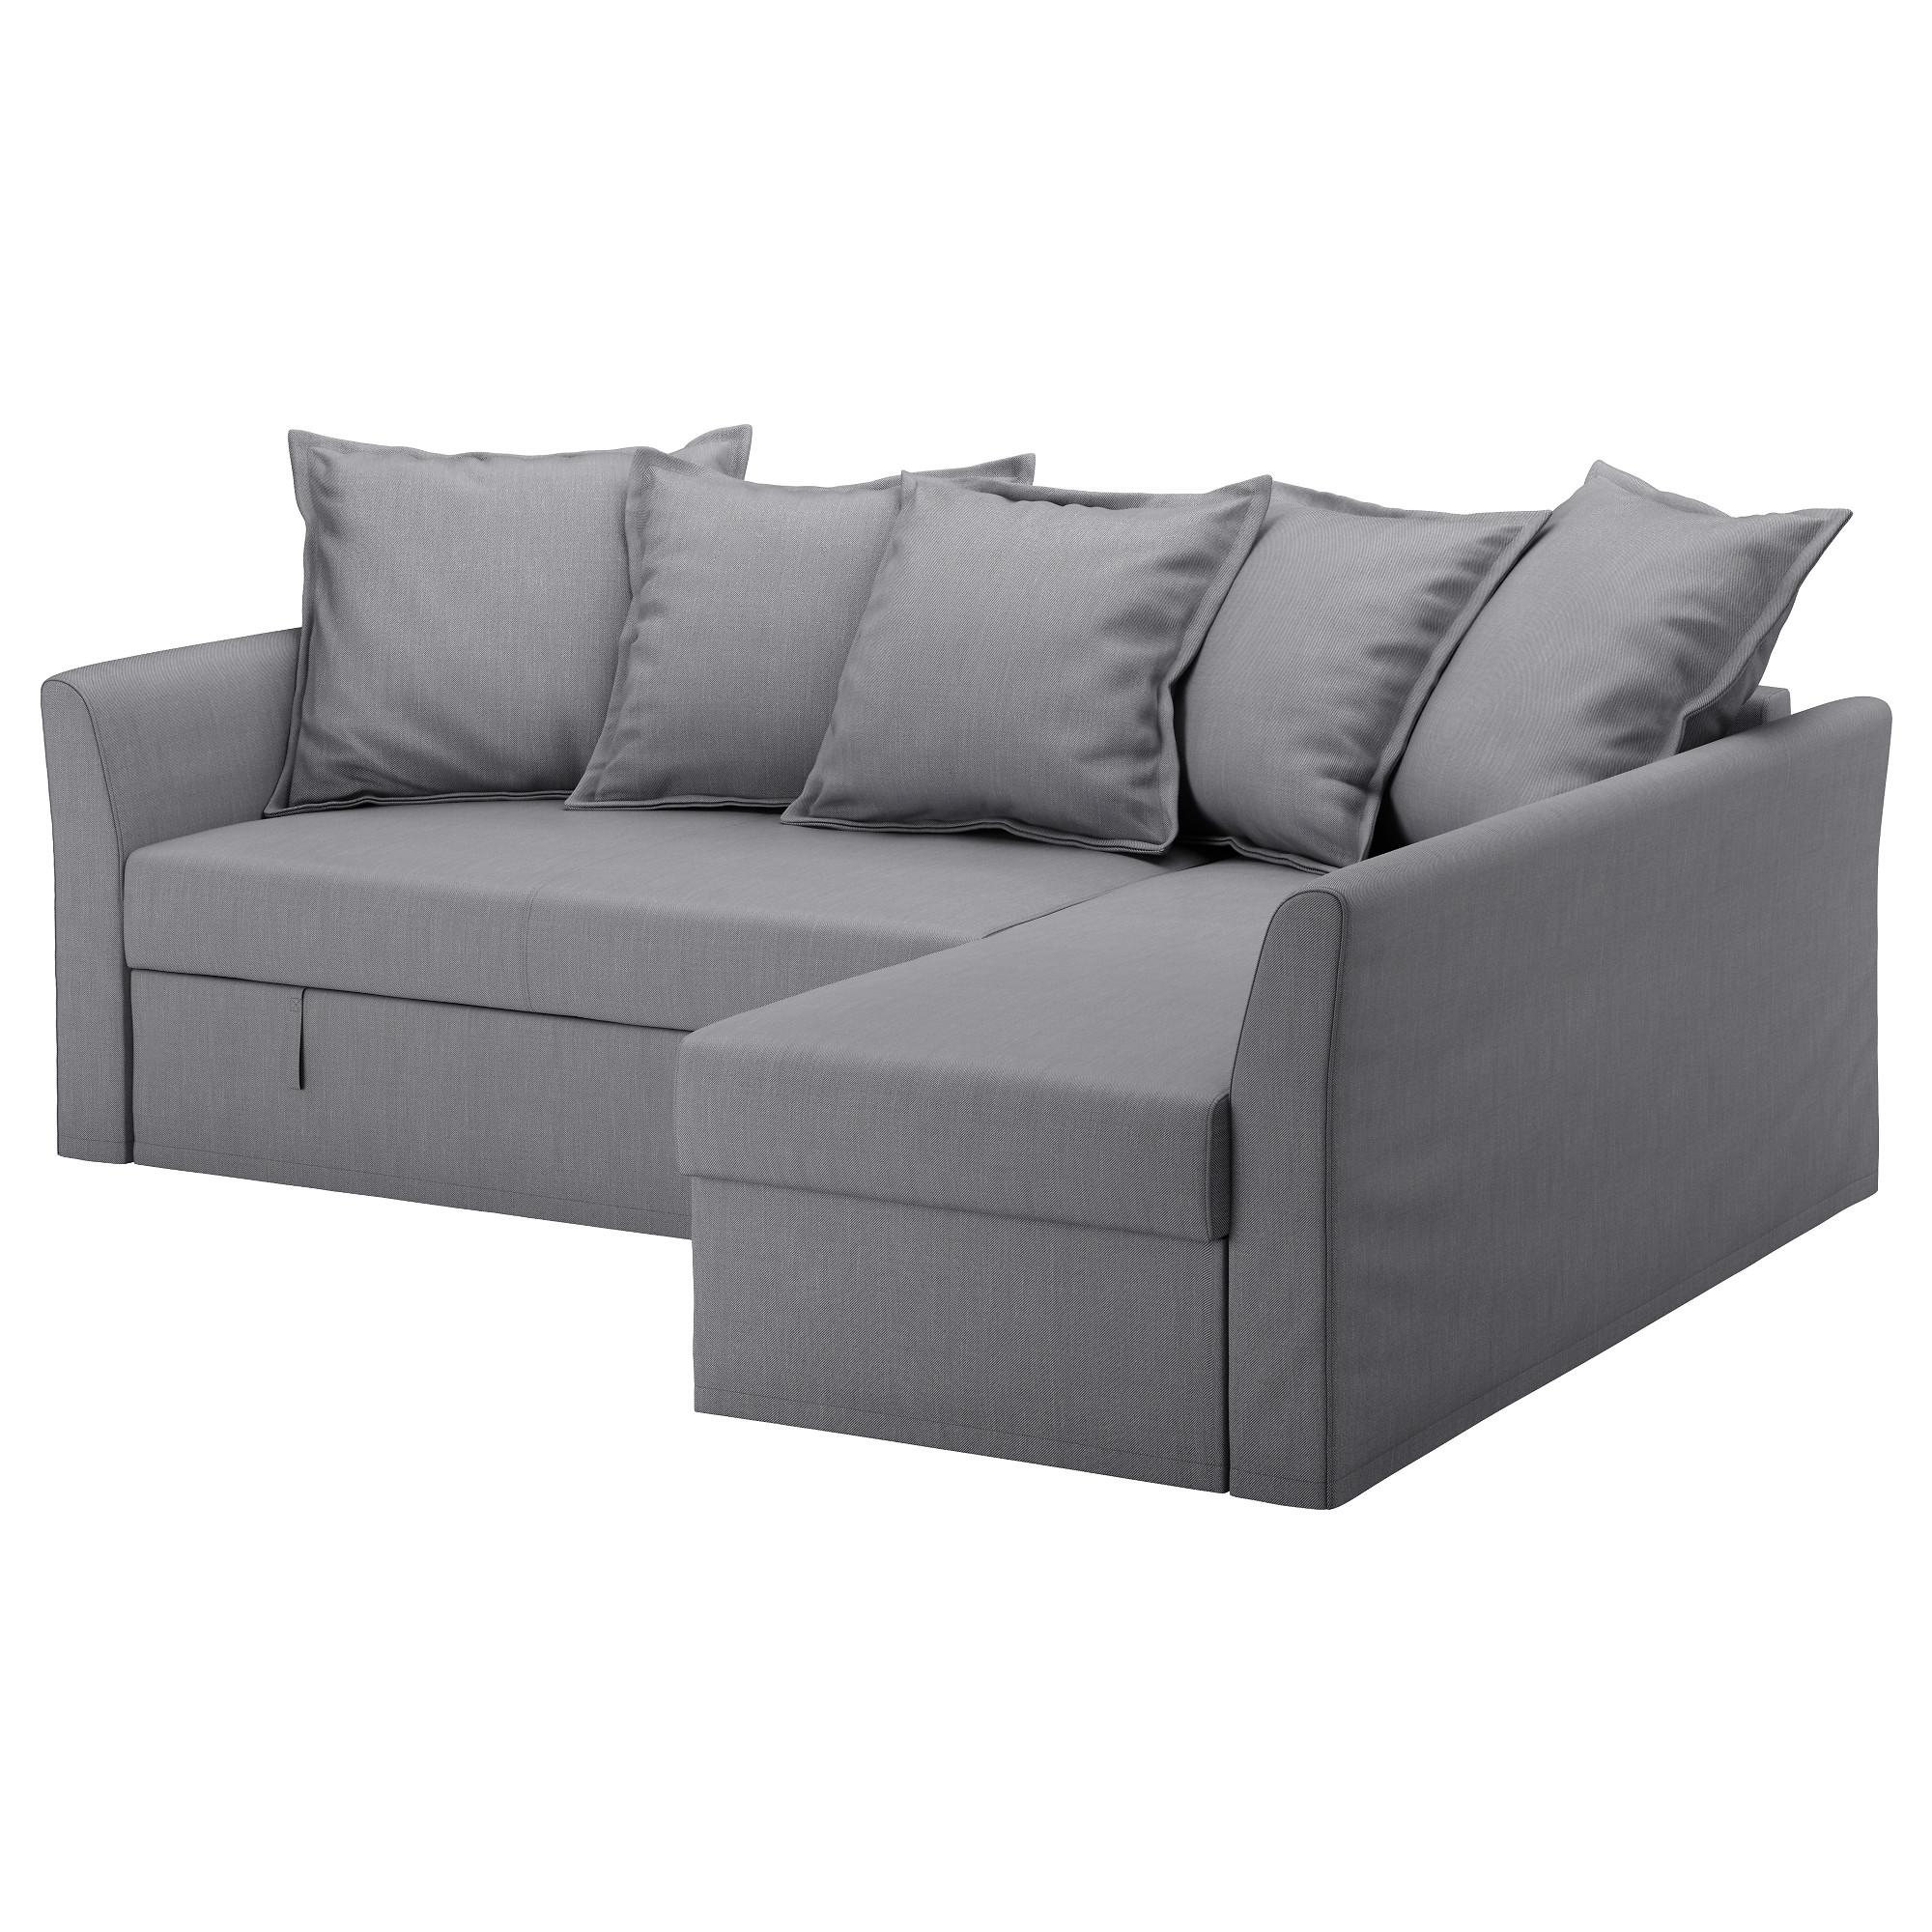 Seats And Sofas Youtube 20 Collection Of Ikea Sectional Sleeper Sofa Sofa Ideas